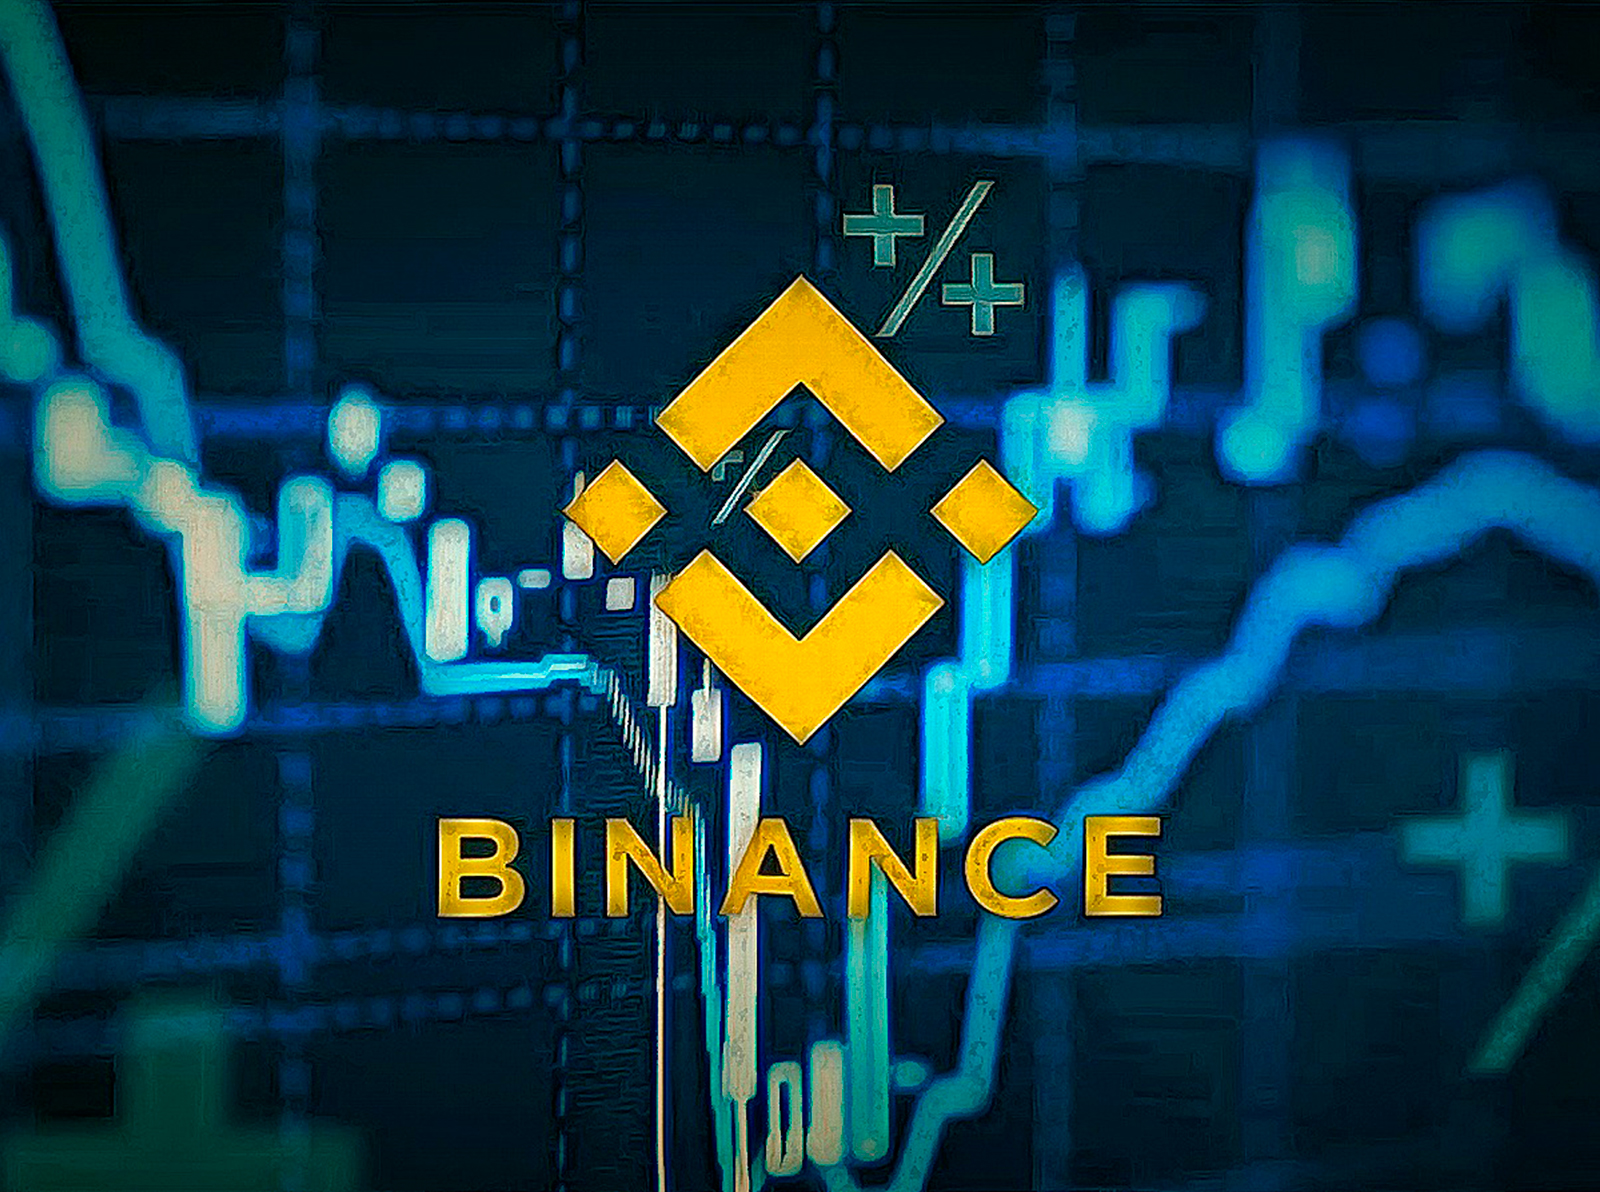 CEO of Binance forecasts a Bitcoin And Crypto 'Bull Run'